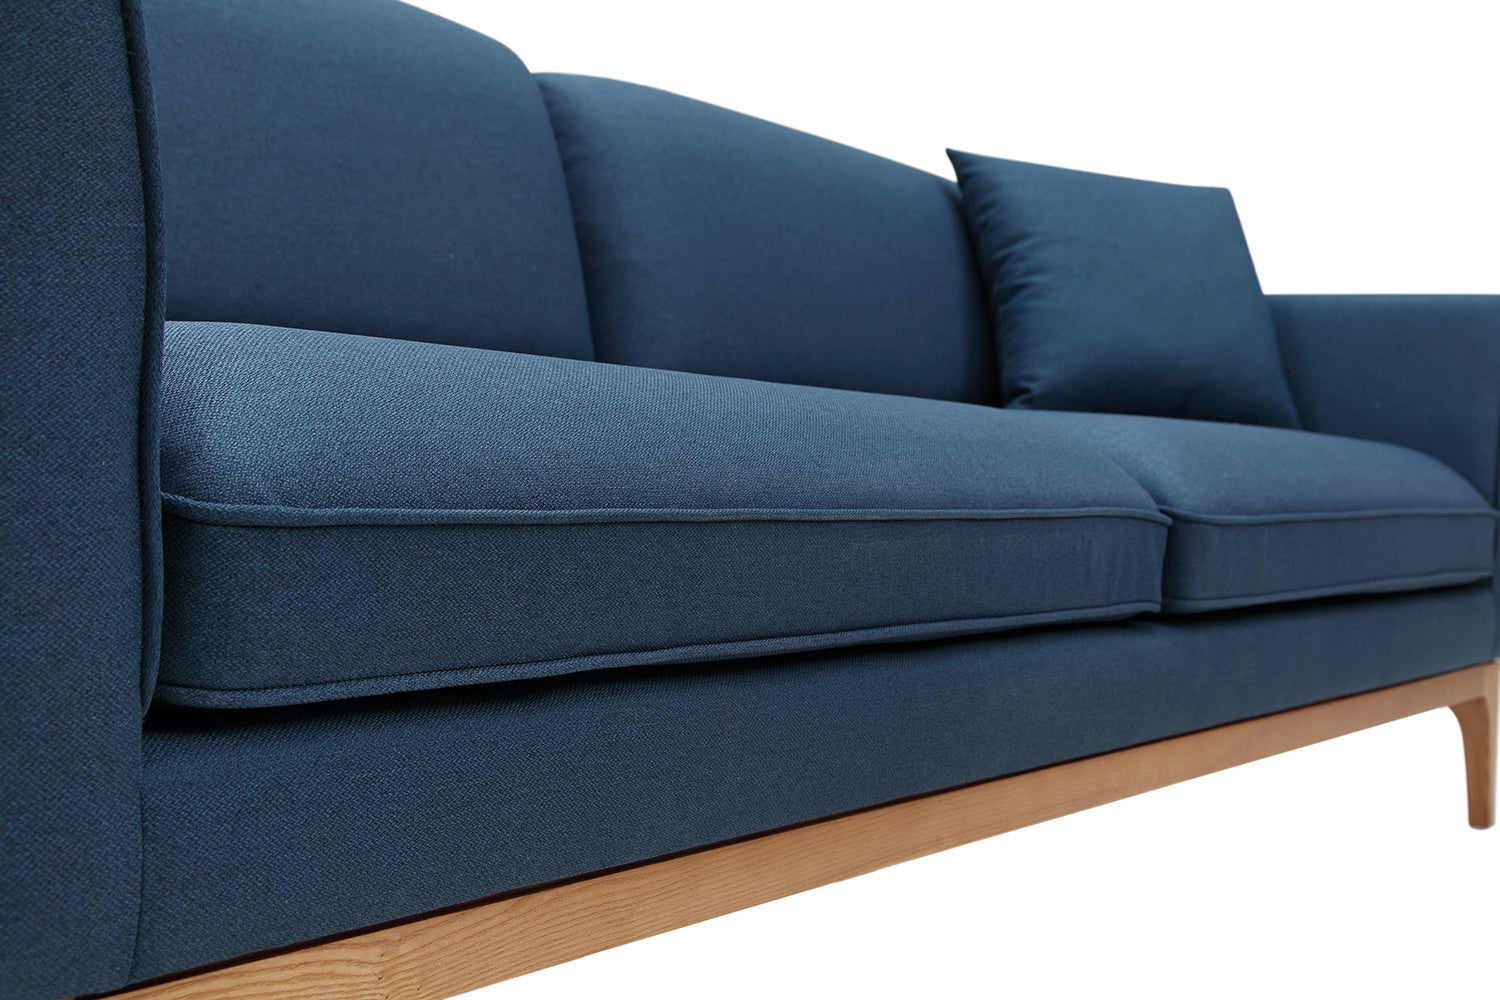 Canap design scandinave brenno dewarens for Canape confortable moelleux